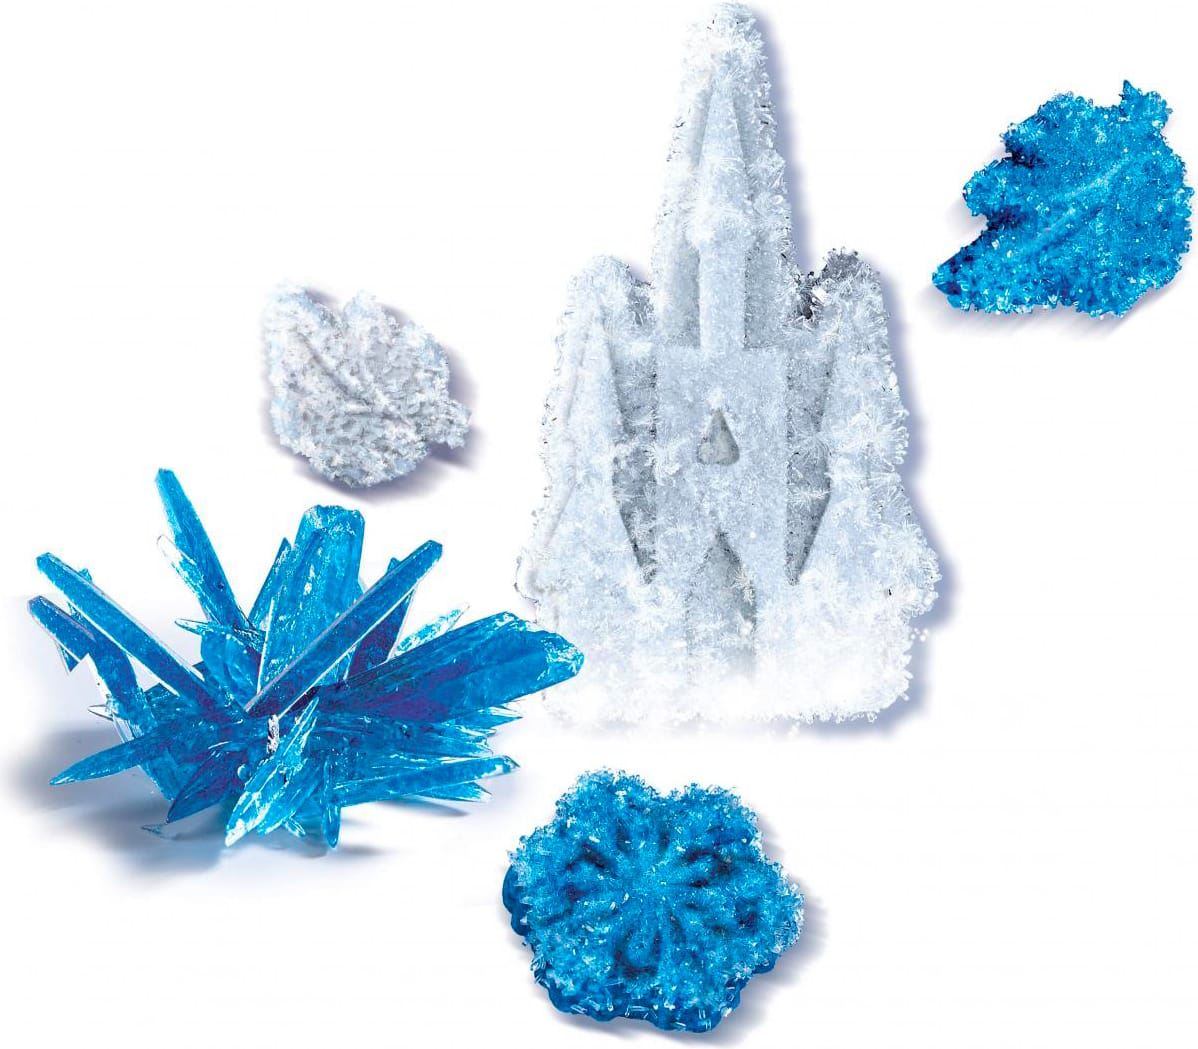 Clementoni 18524A Disney Frozen 2 Magic Crystal set